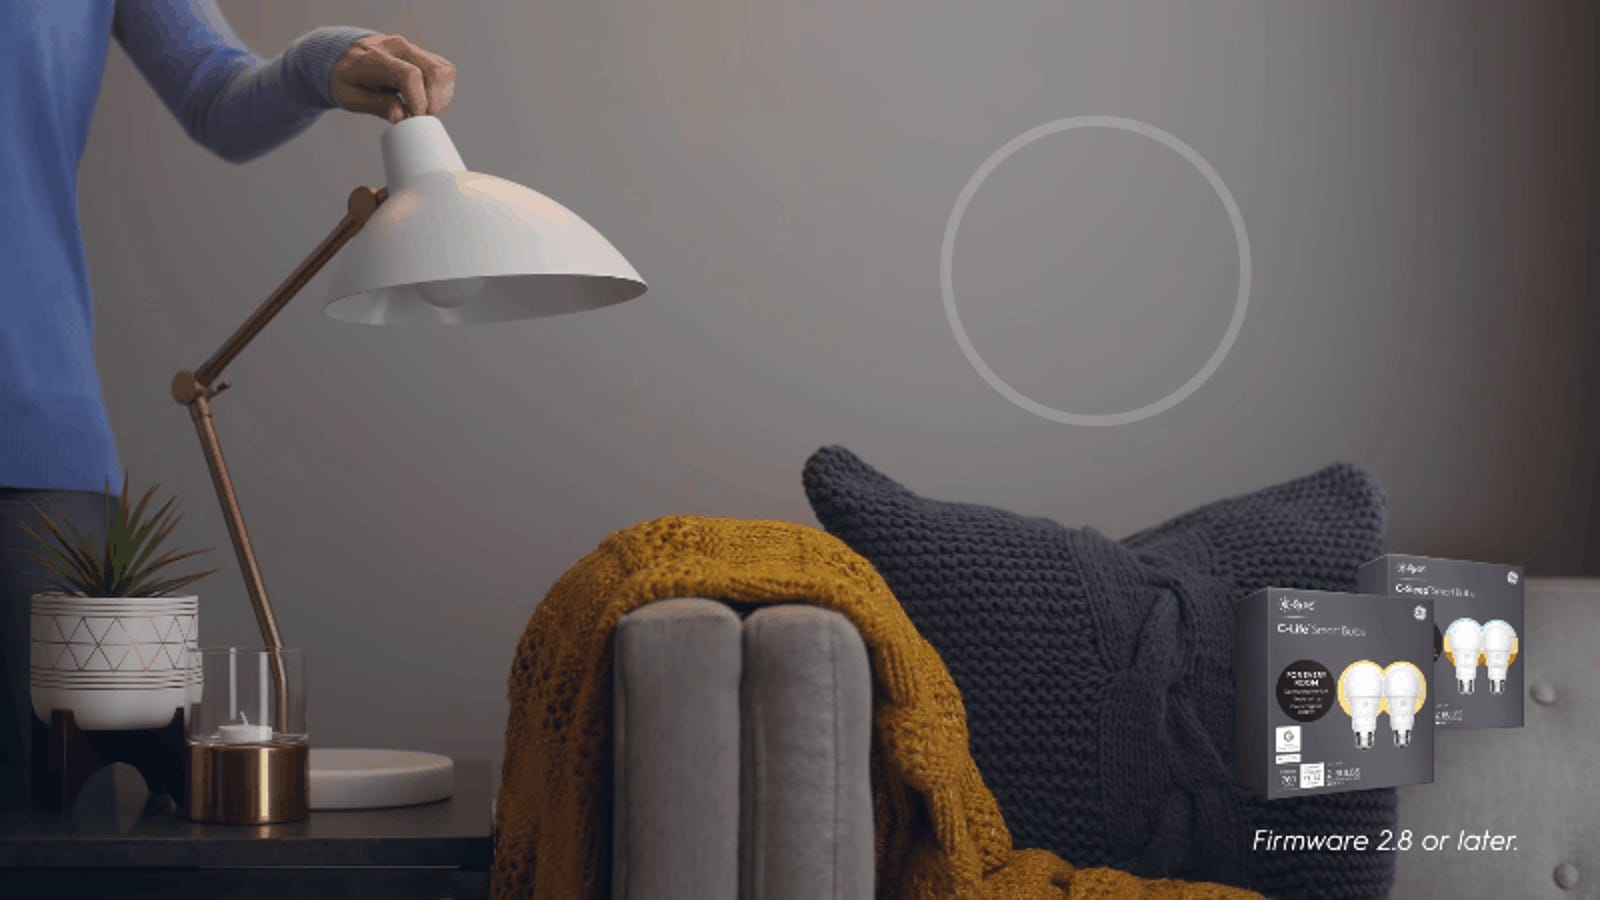 This 'Smart' Light Bulb Video Is the Most Ridiculous Thing